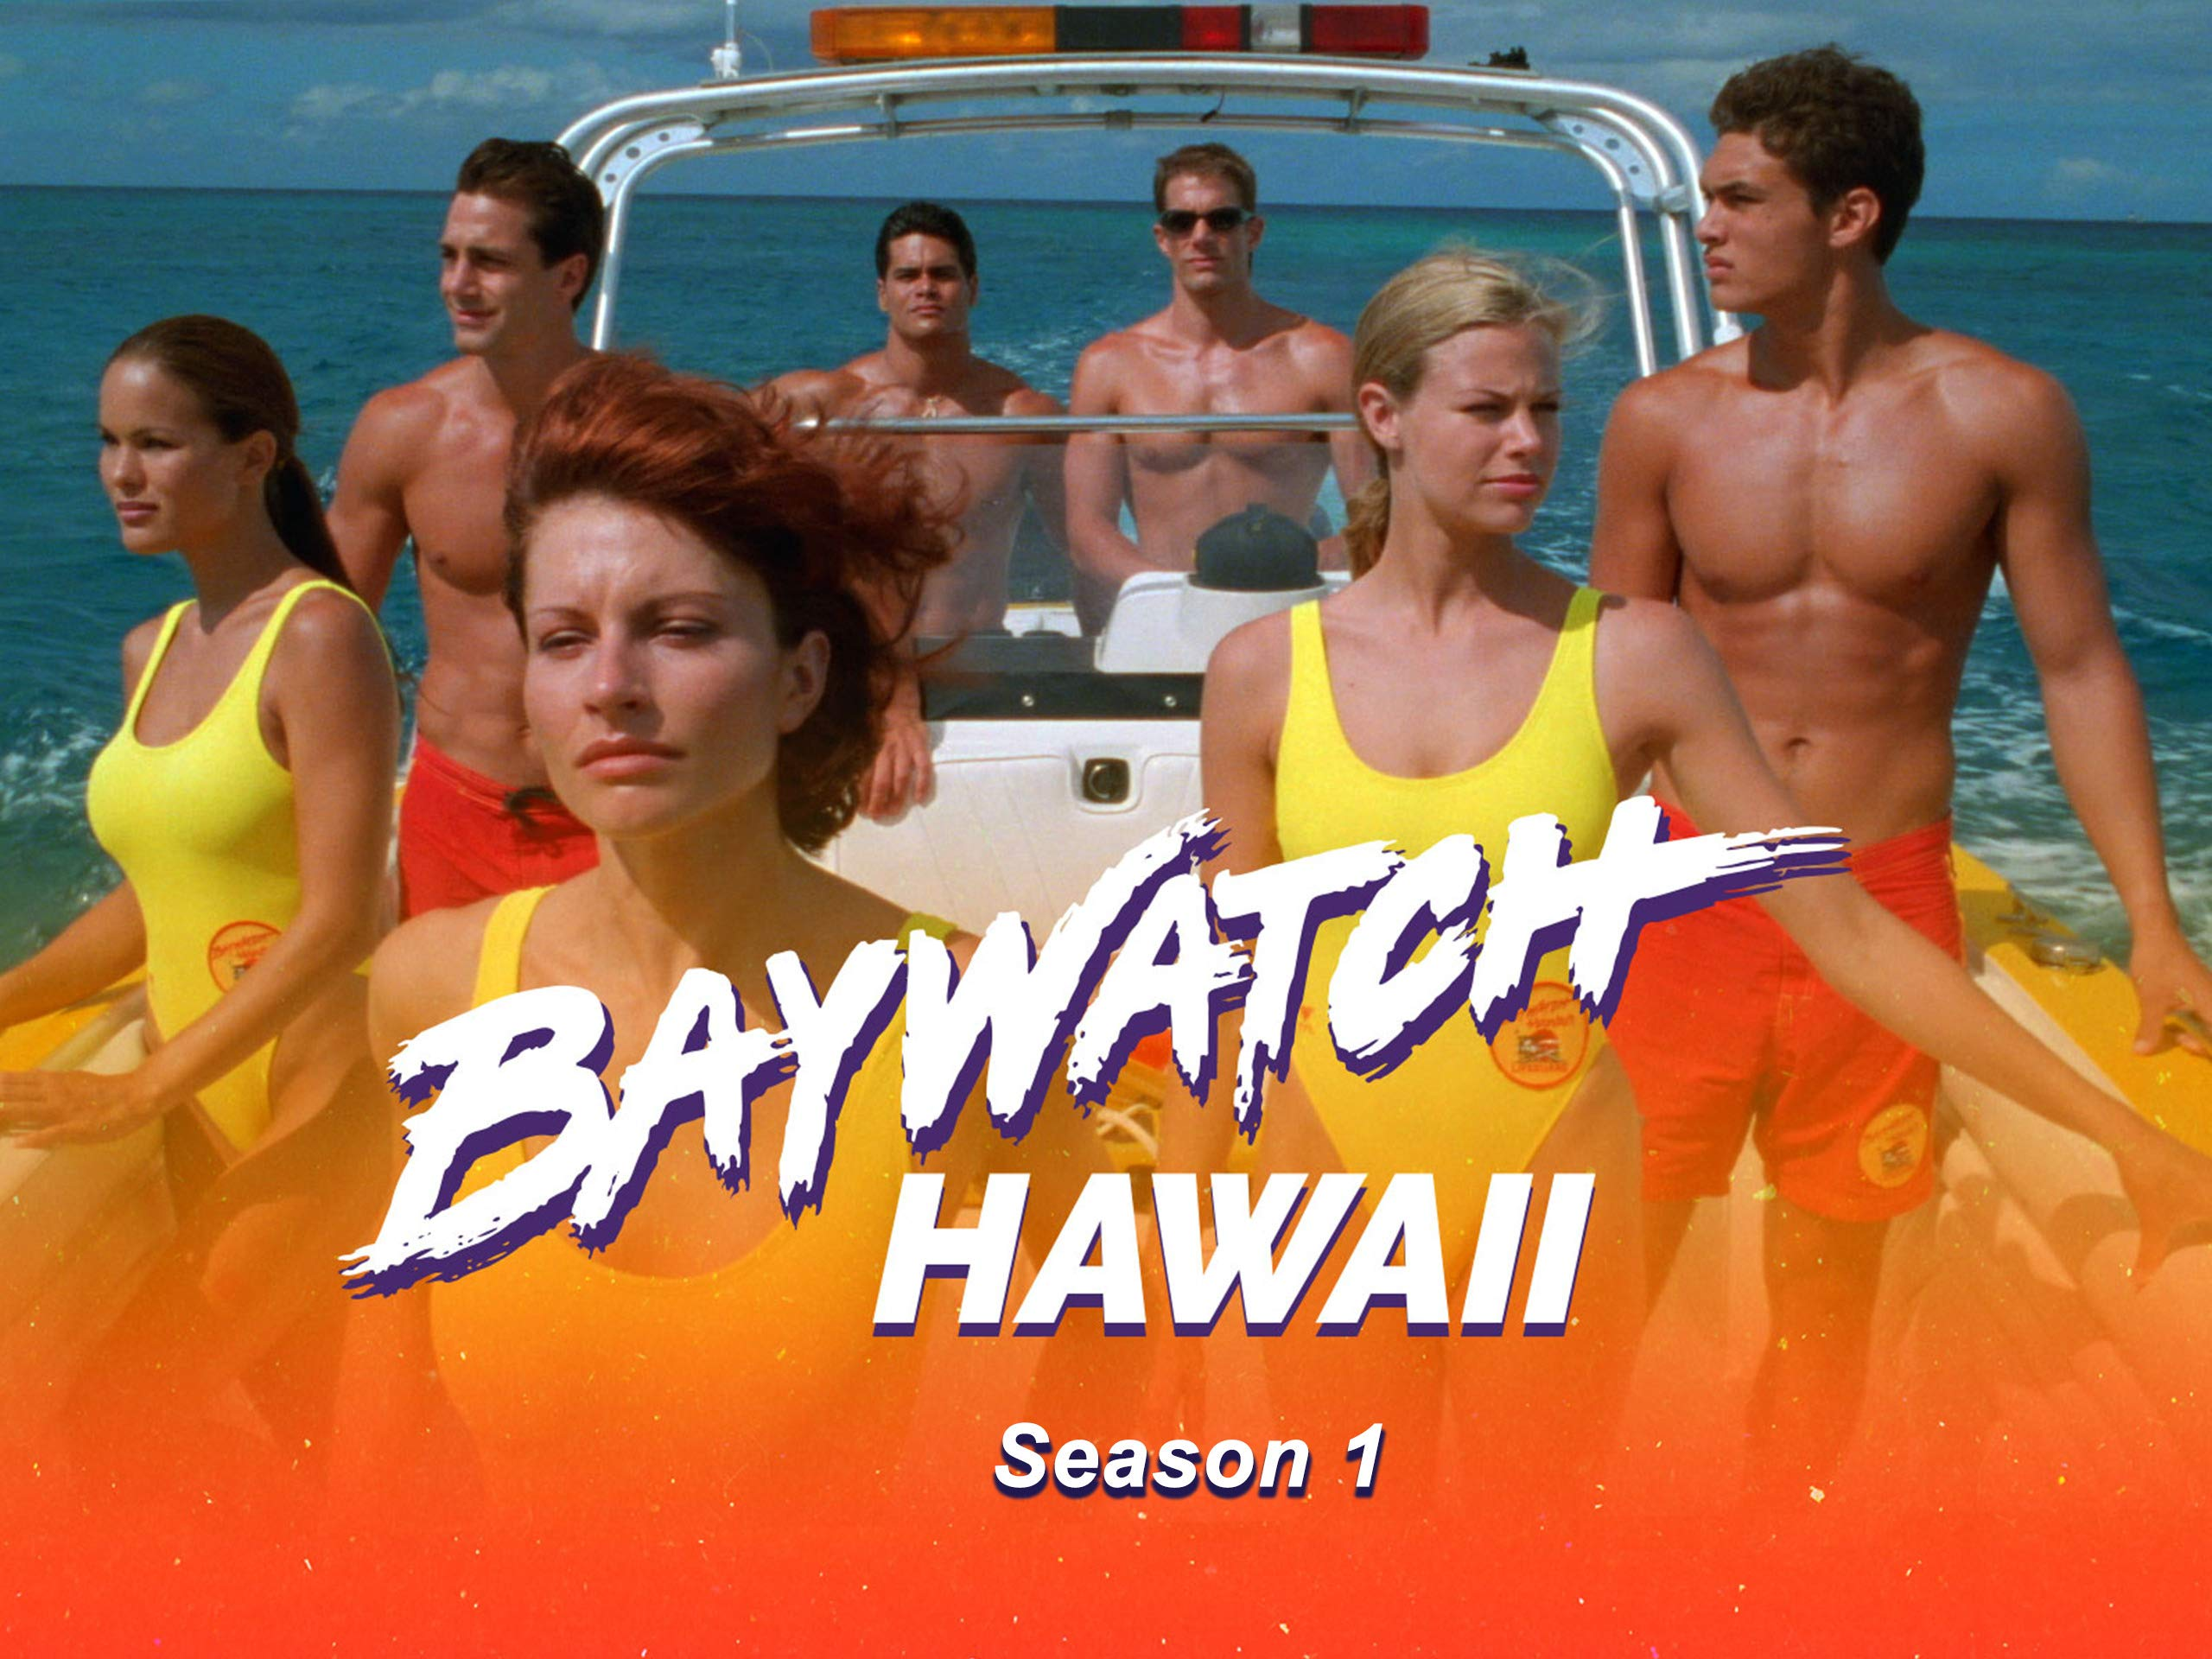 Baywatch Hawaii - Season 1